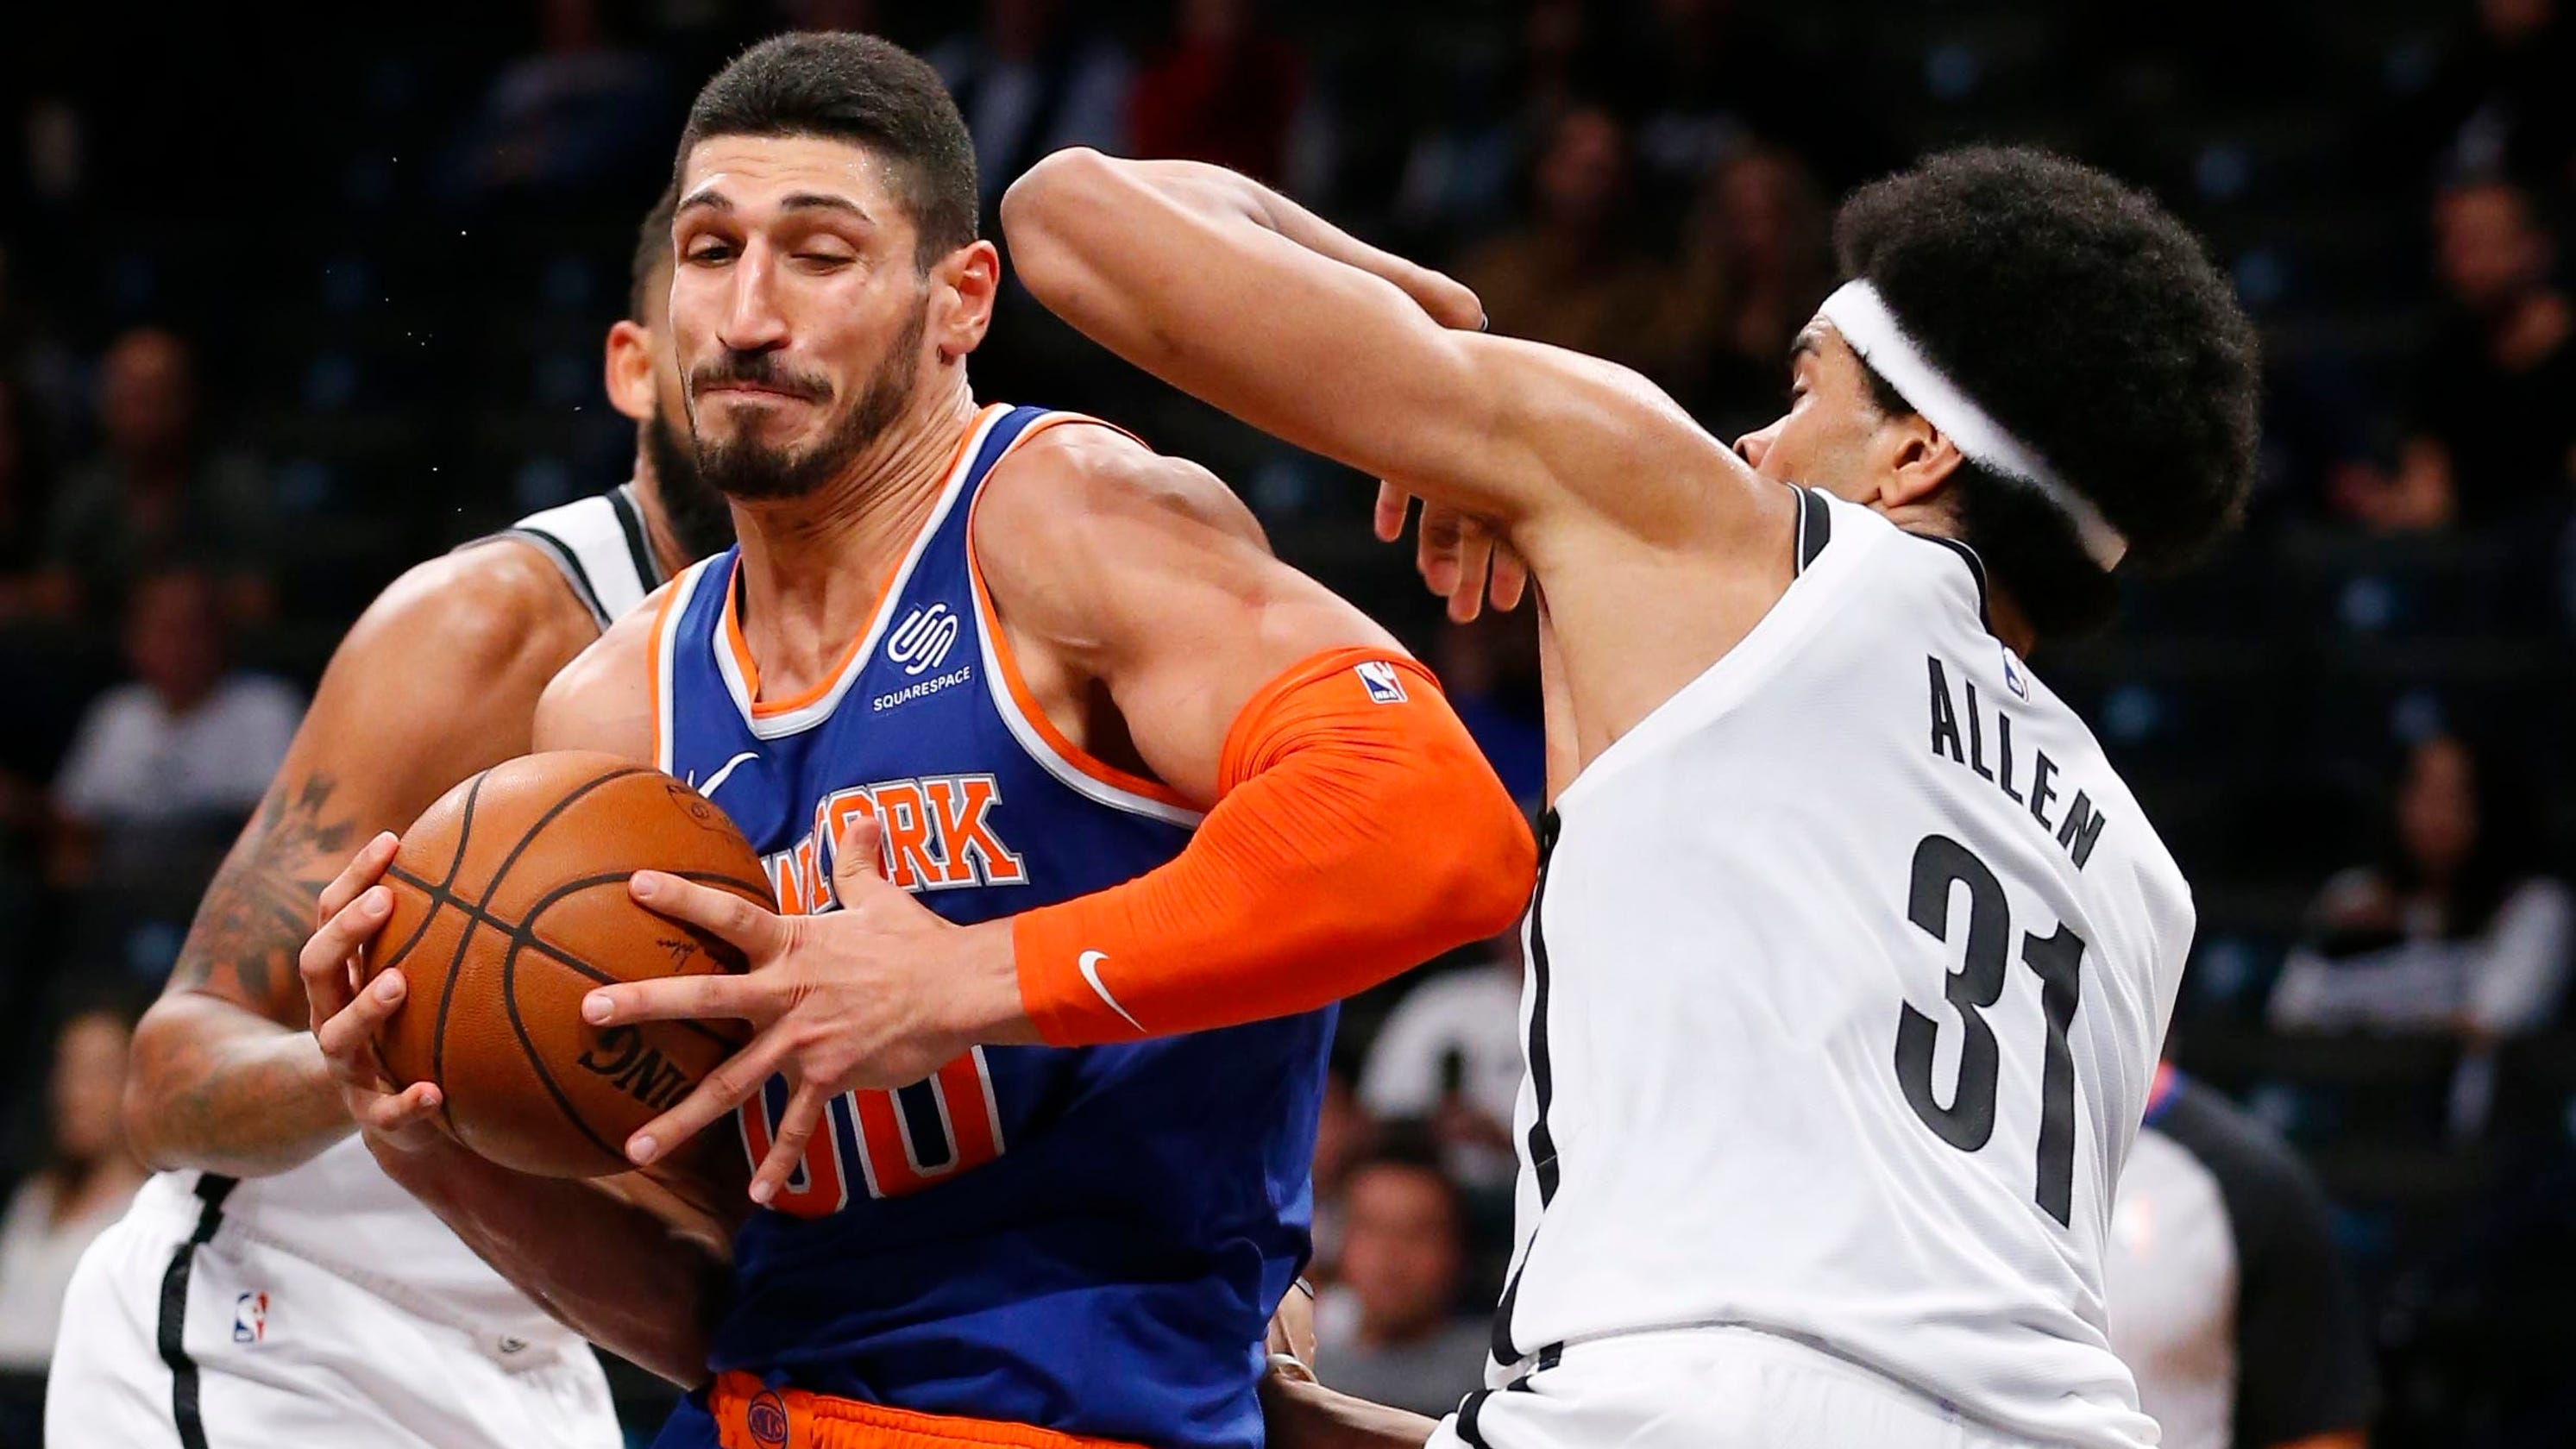 New York Knicks: 5 players who have stood out in preseason